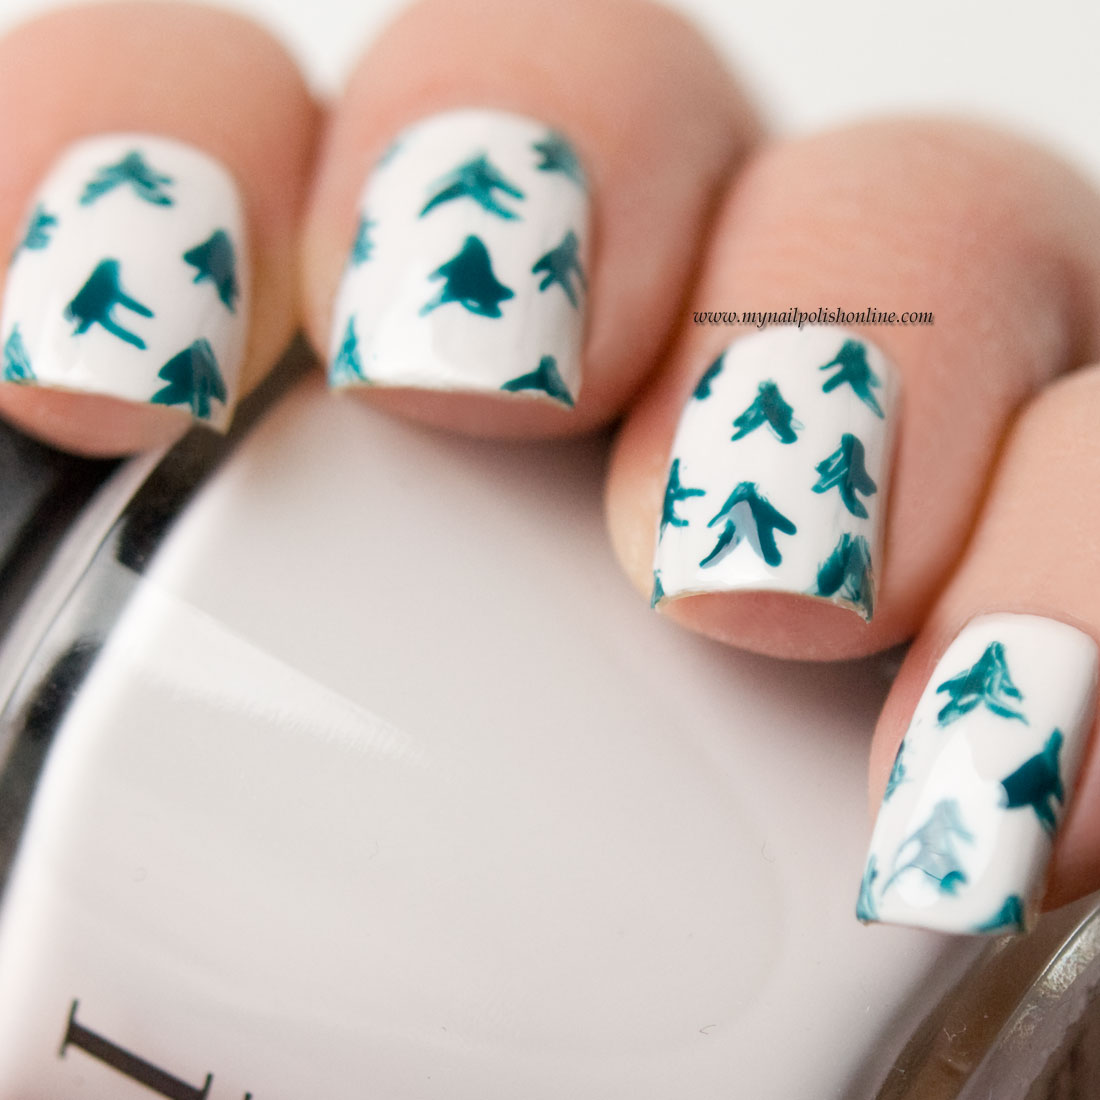 Nail Art - Winter Trees